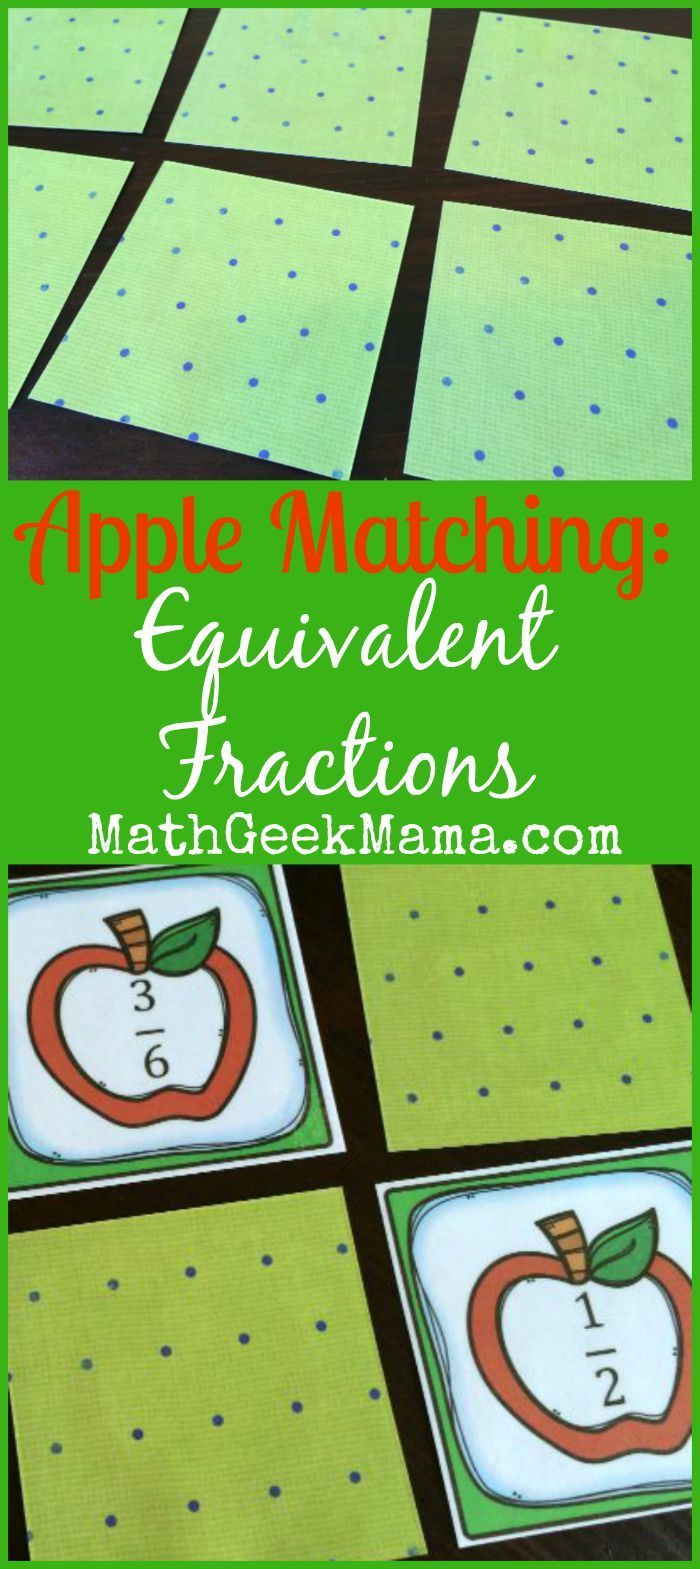 This is a photo of Resource Equivalent Fractions Games Printable